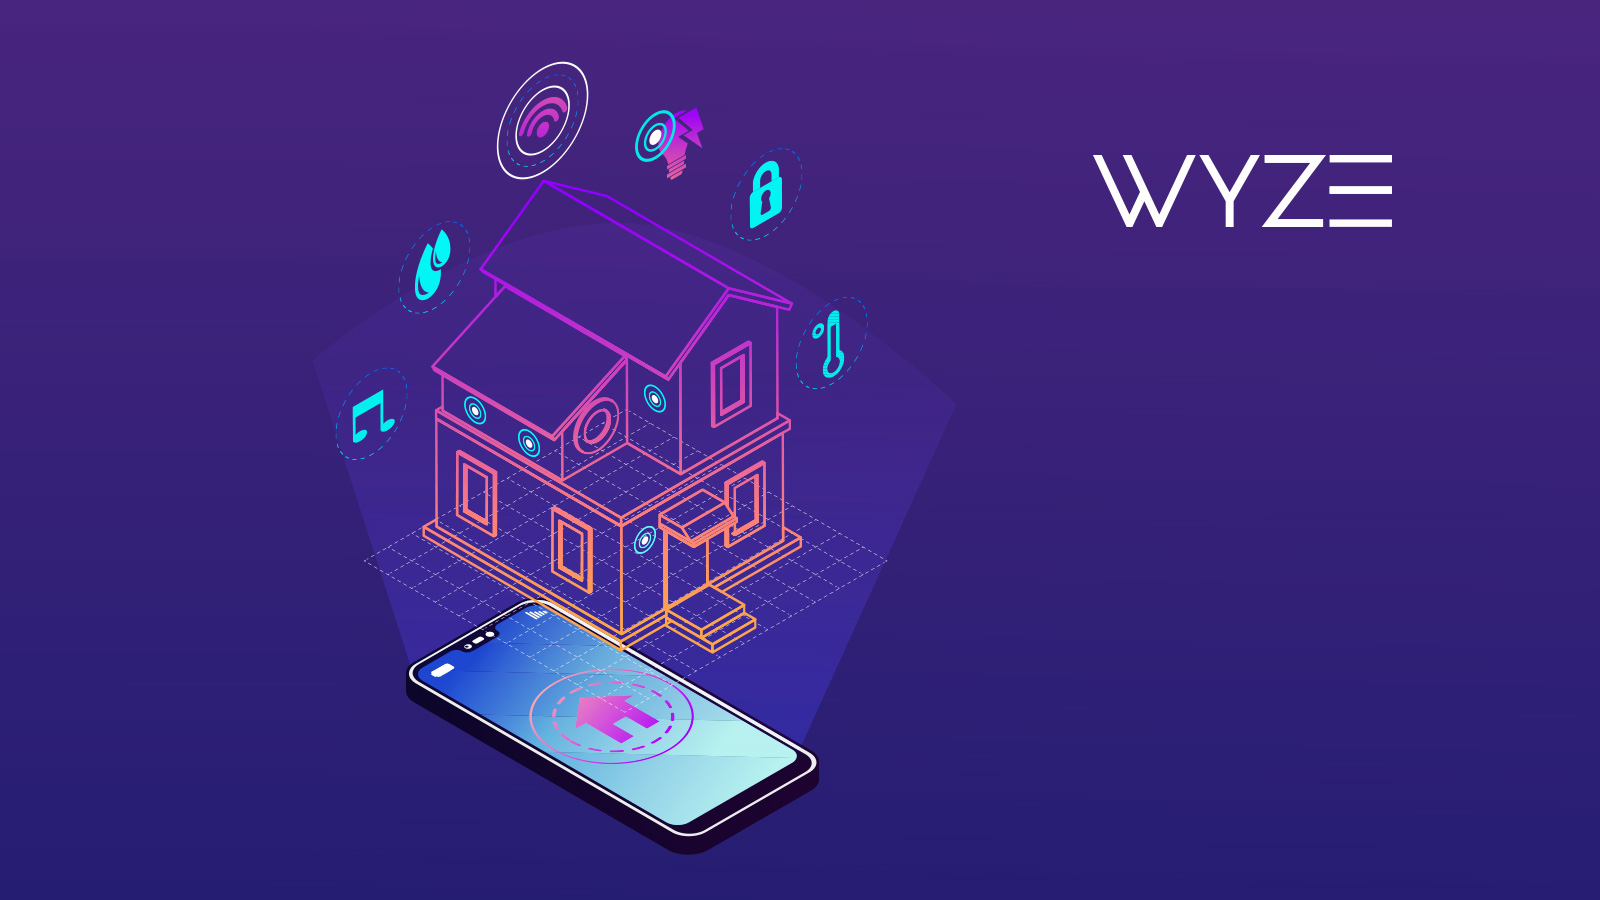 Wyze Incorporates Xnor Edge AI to Bring Computer Vision to